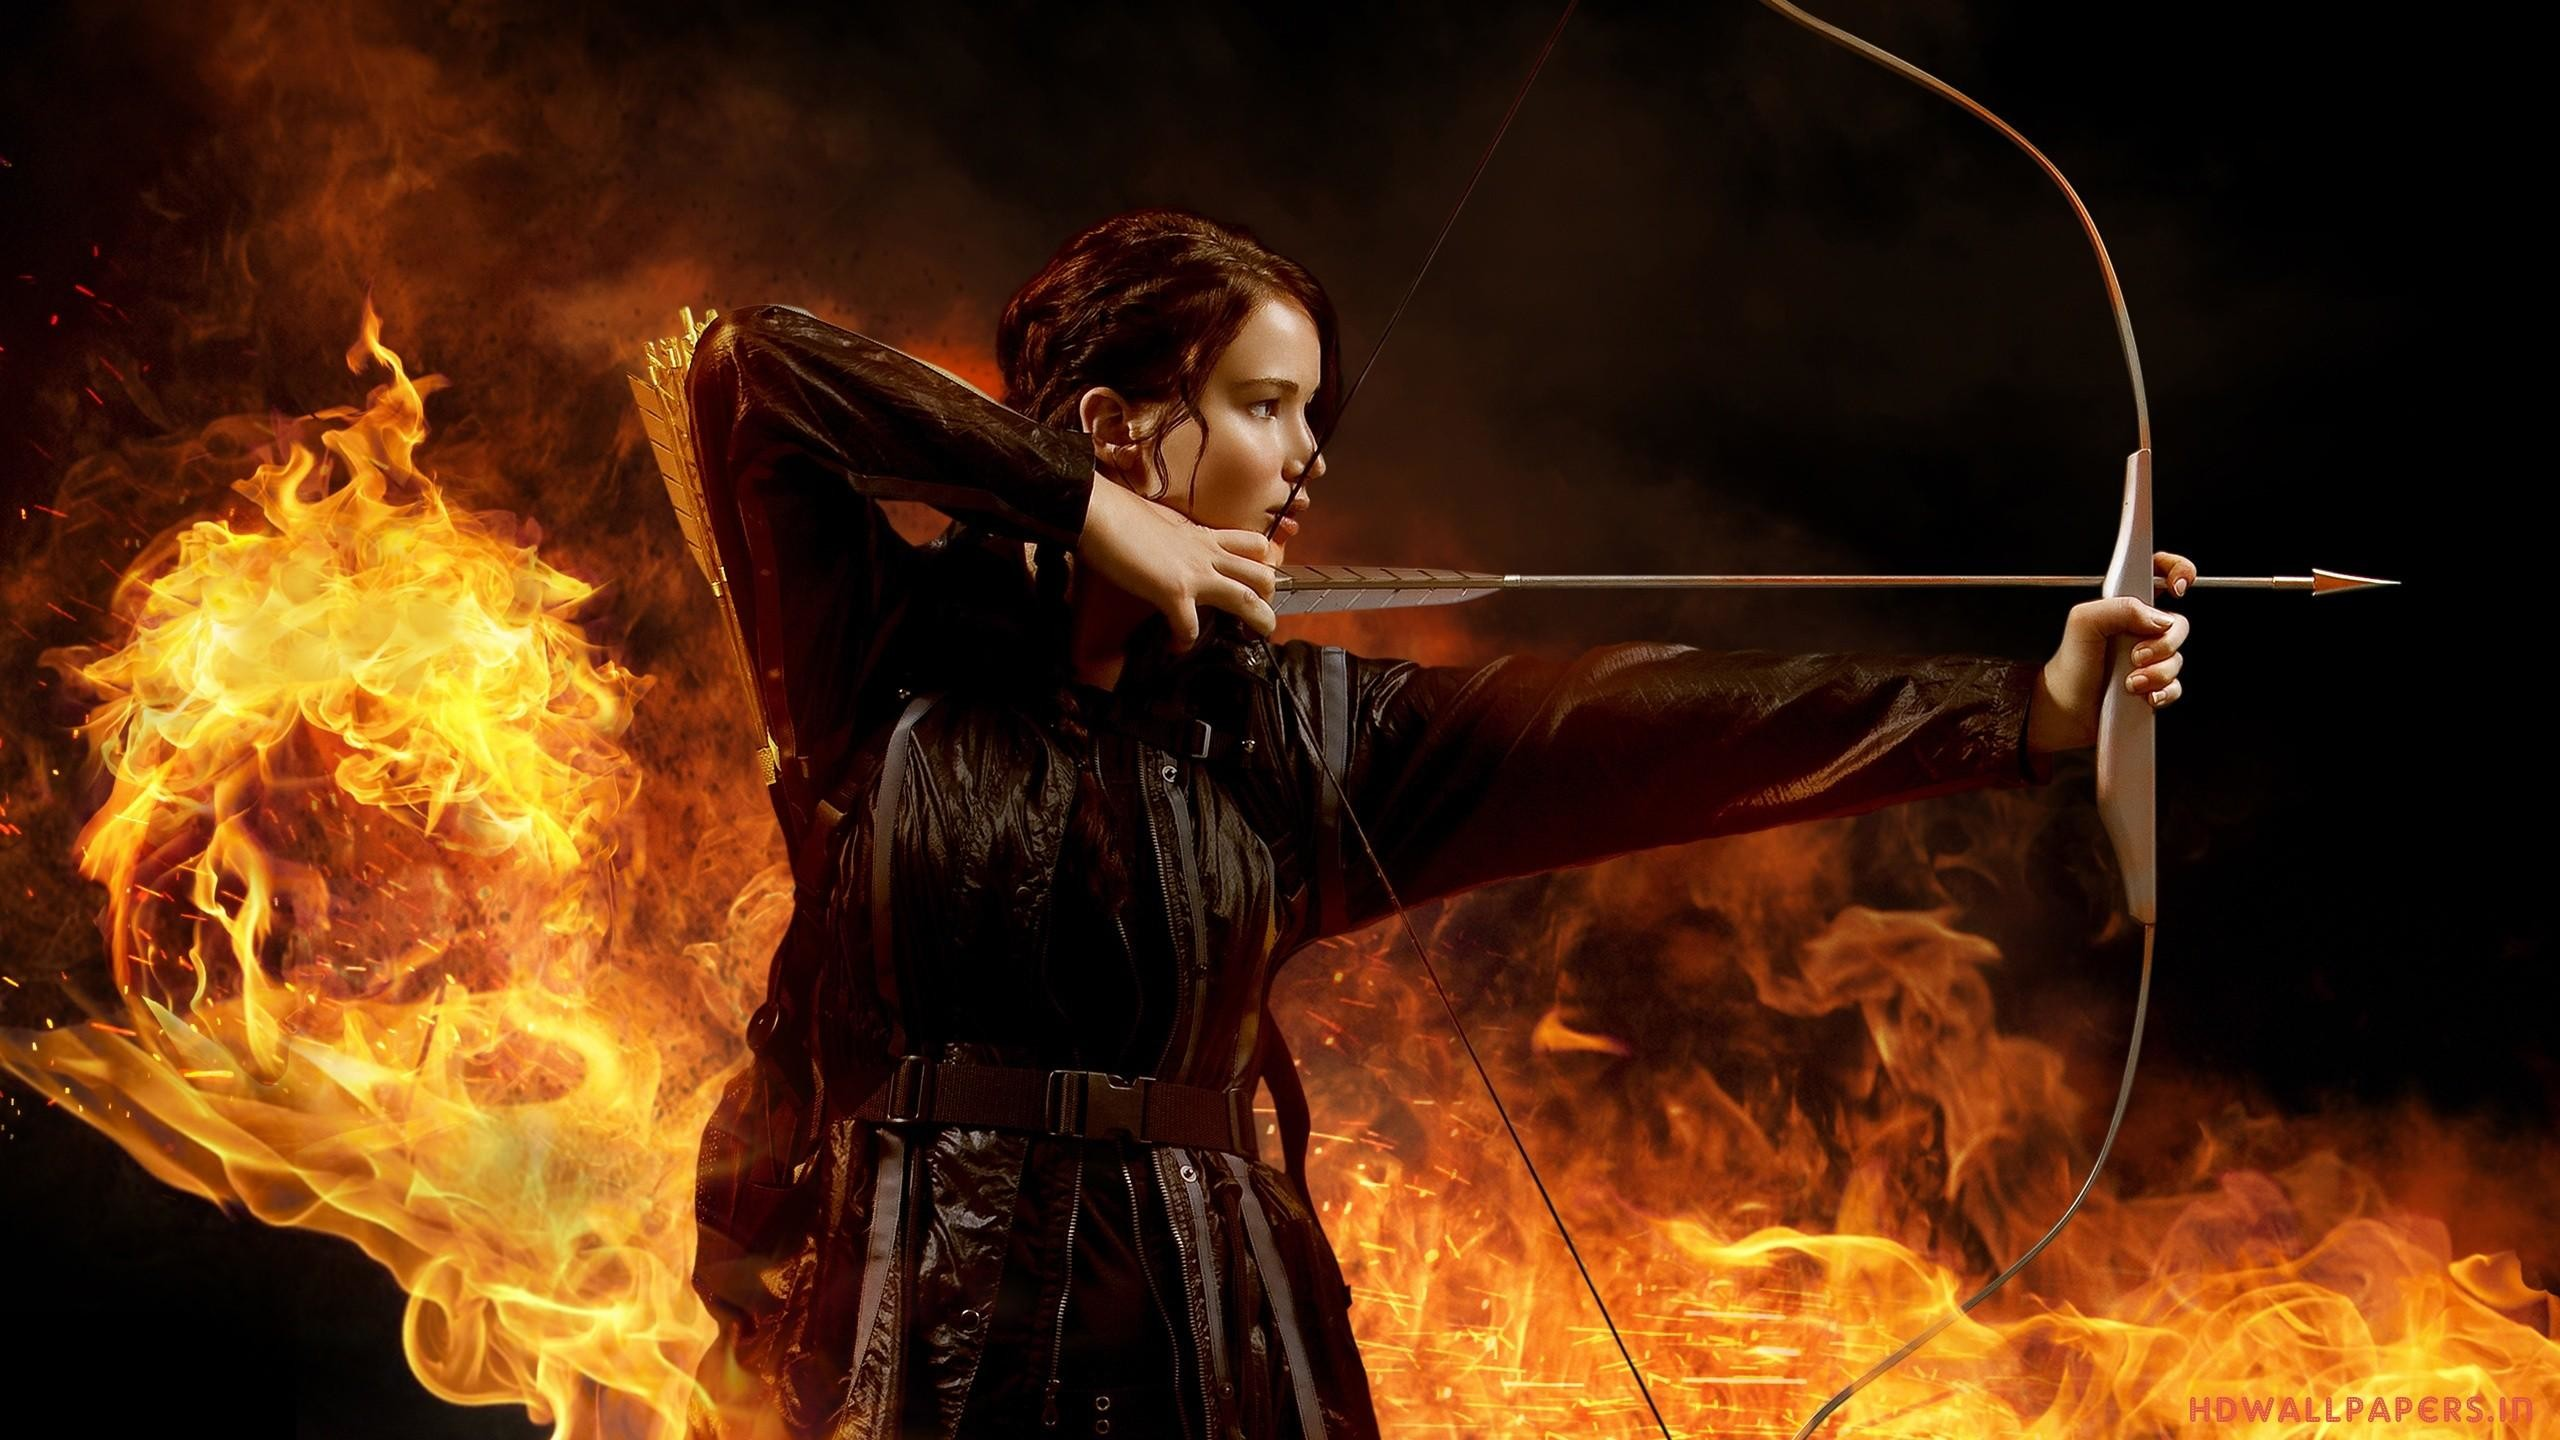 2560x1440 bow and arrow wallpaper #504176